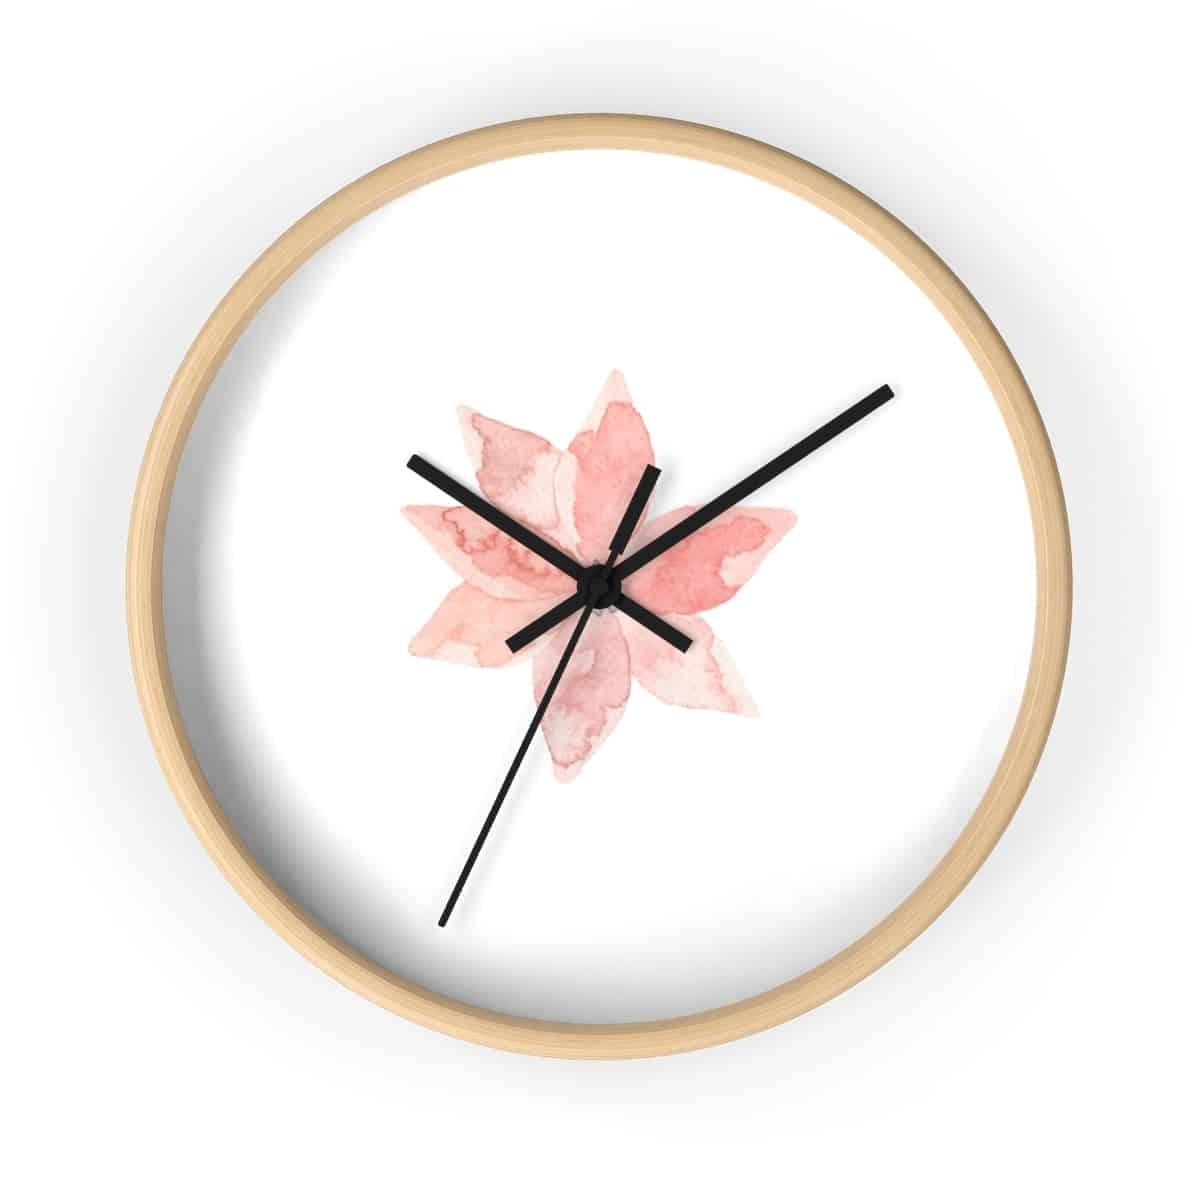 Statement Wall Clocks Watercolor Lilly Print Wooden Wall Clock Blogging Mode